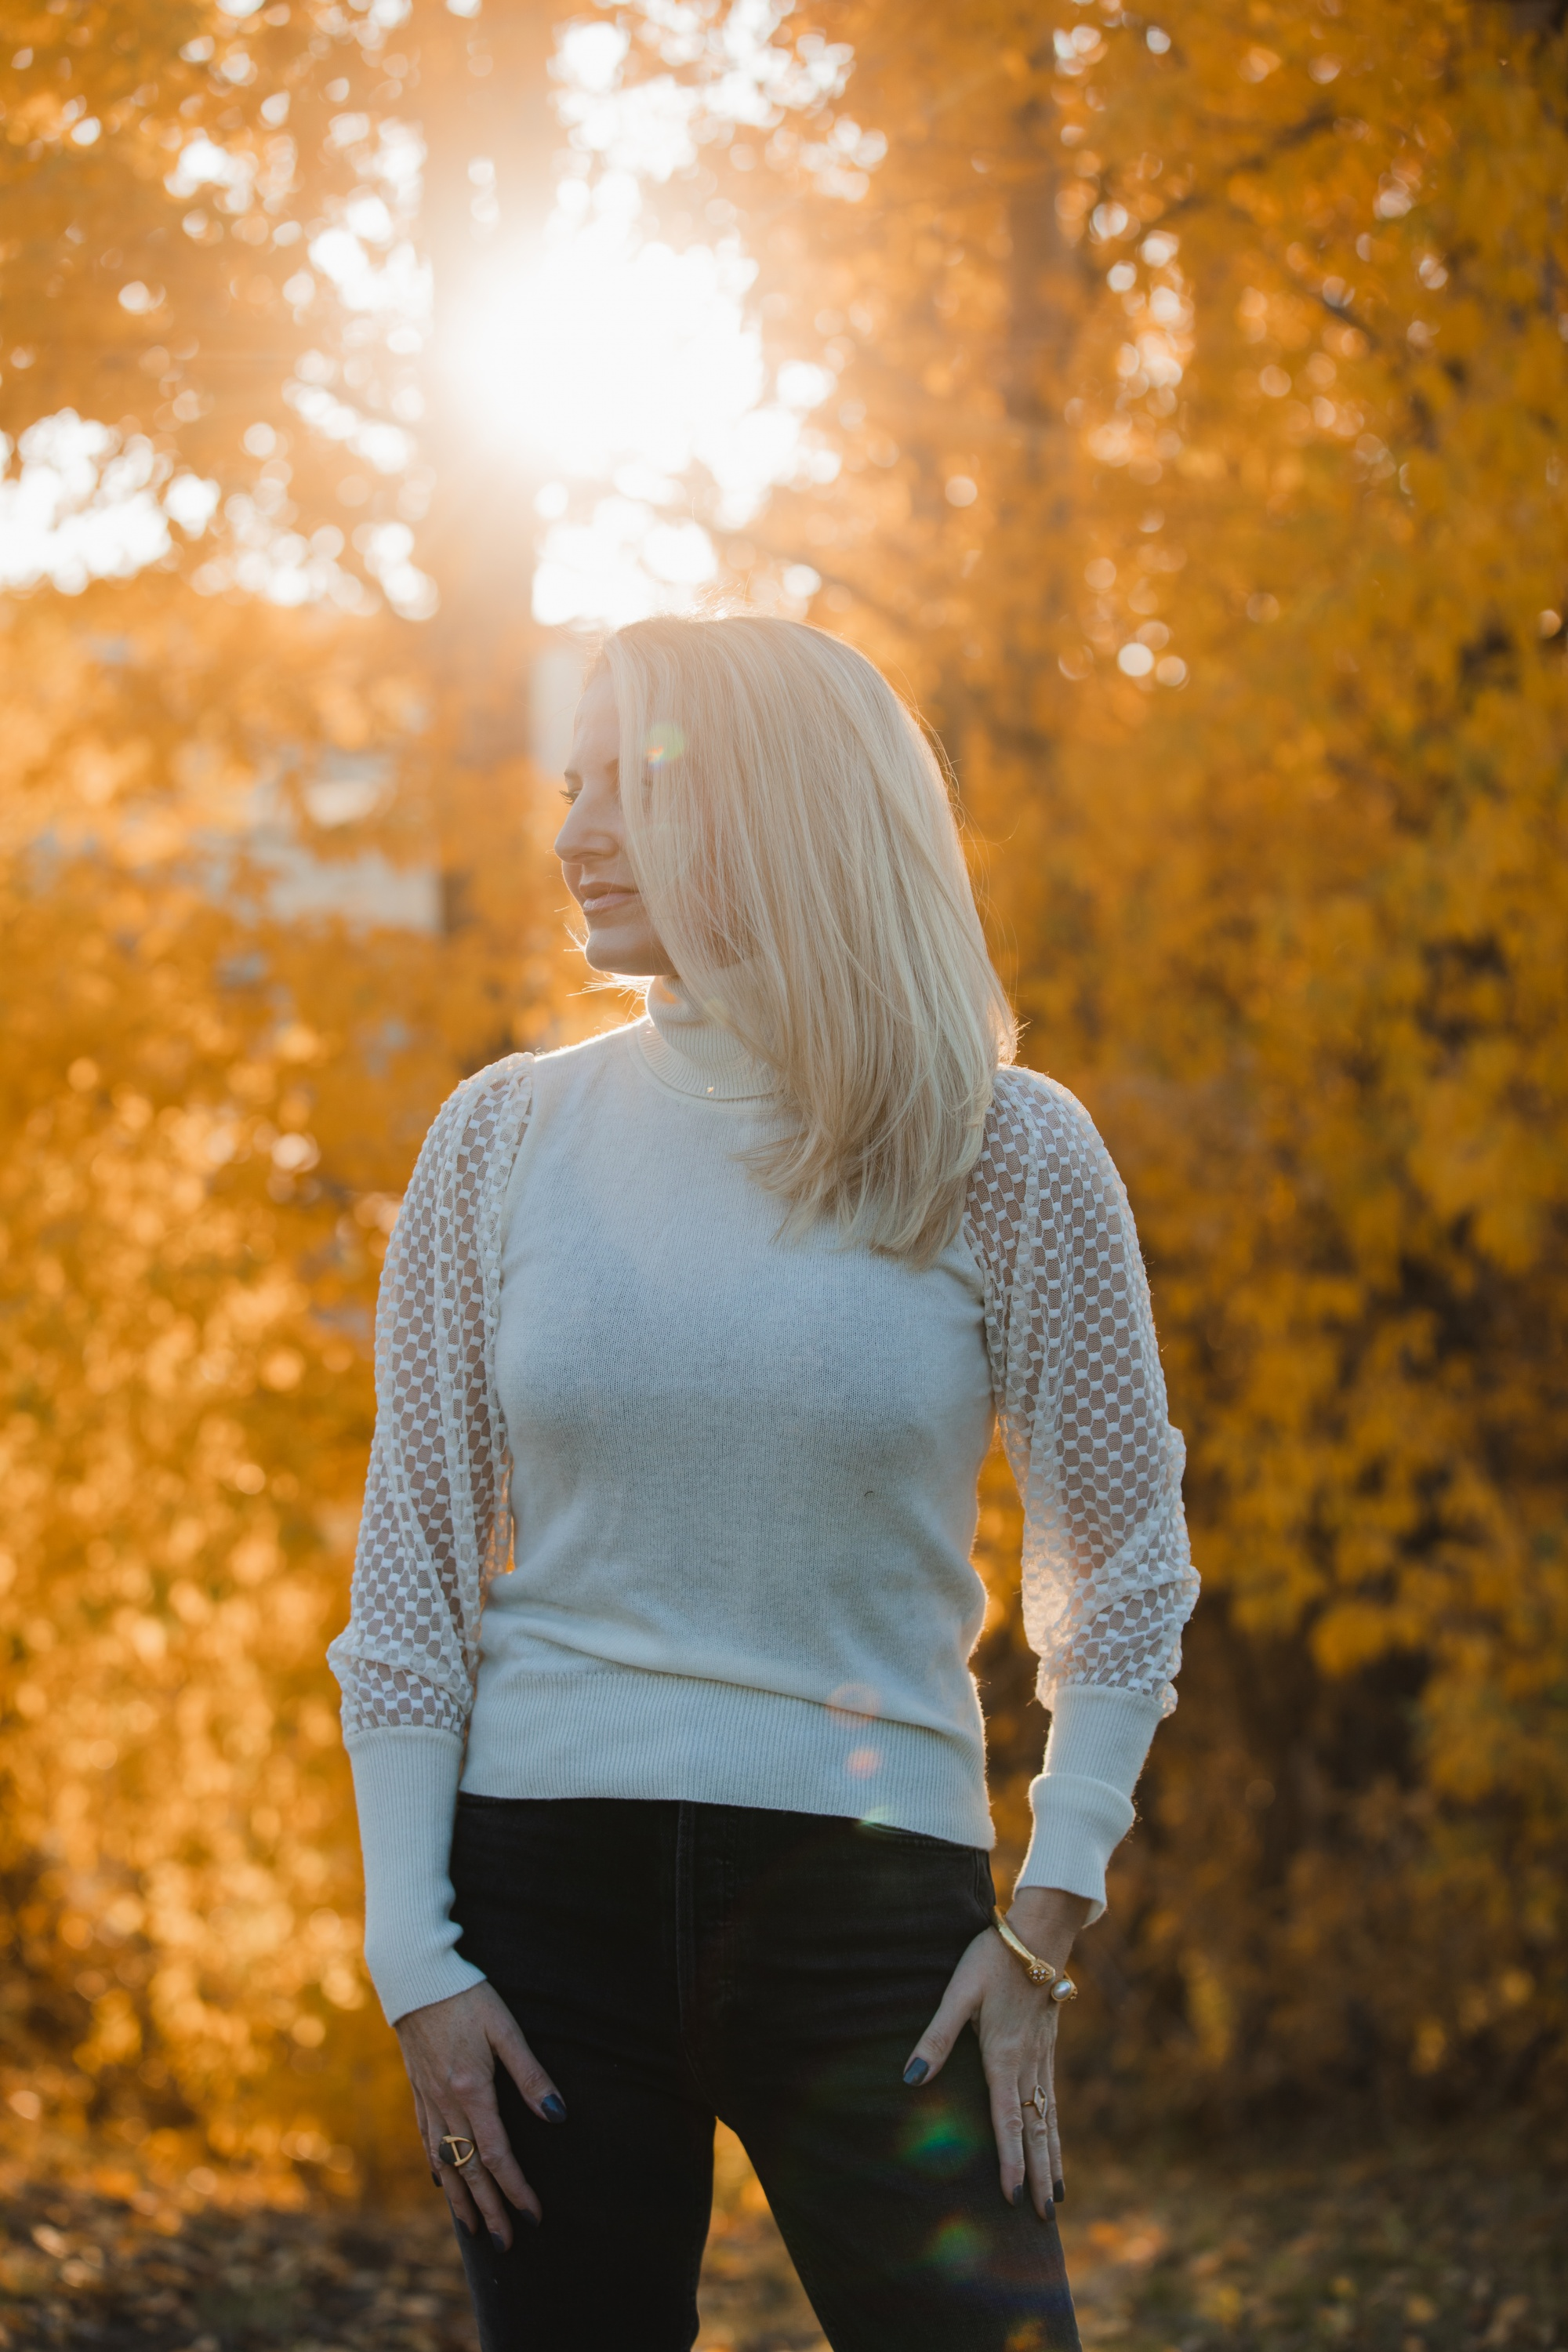 Fall sweater, Erin Busbee of Busbee Style wearing an ivory Aqua cashmere turtleneck sweater with mesh sleeves with dark gray jeans by Agolde in Telluride, Colorado